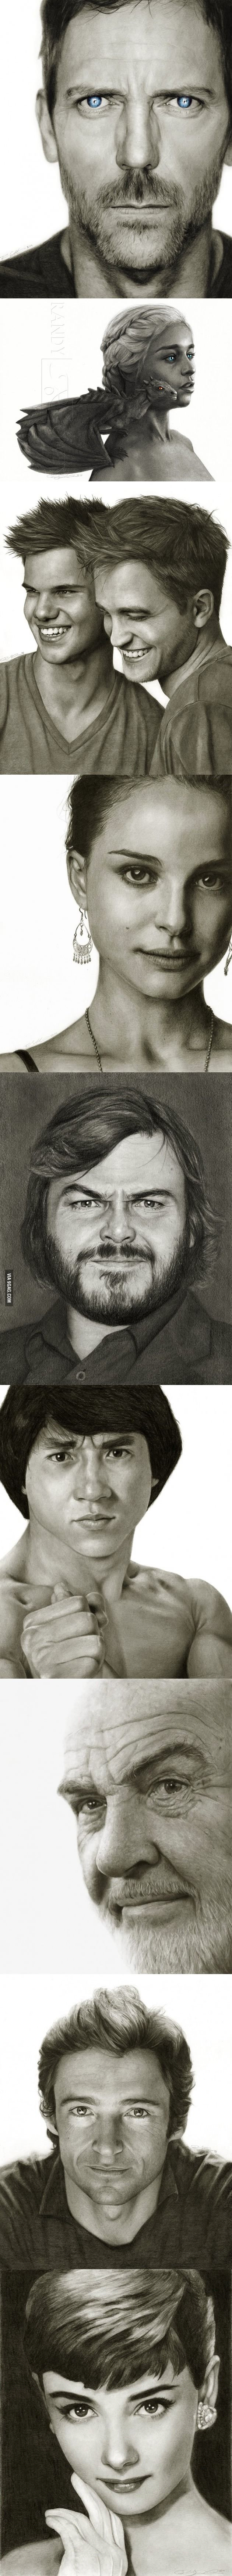 Impressive Pencil And Charcoal Celebrity Portraits That Look Real